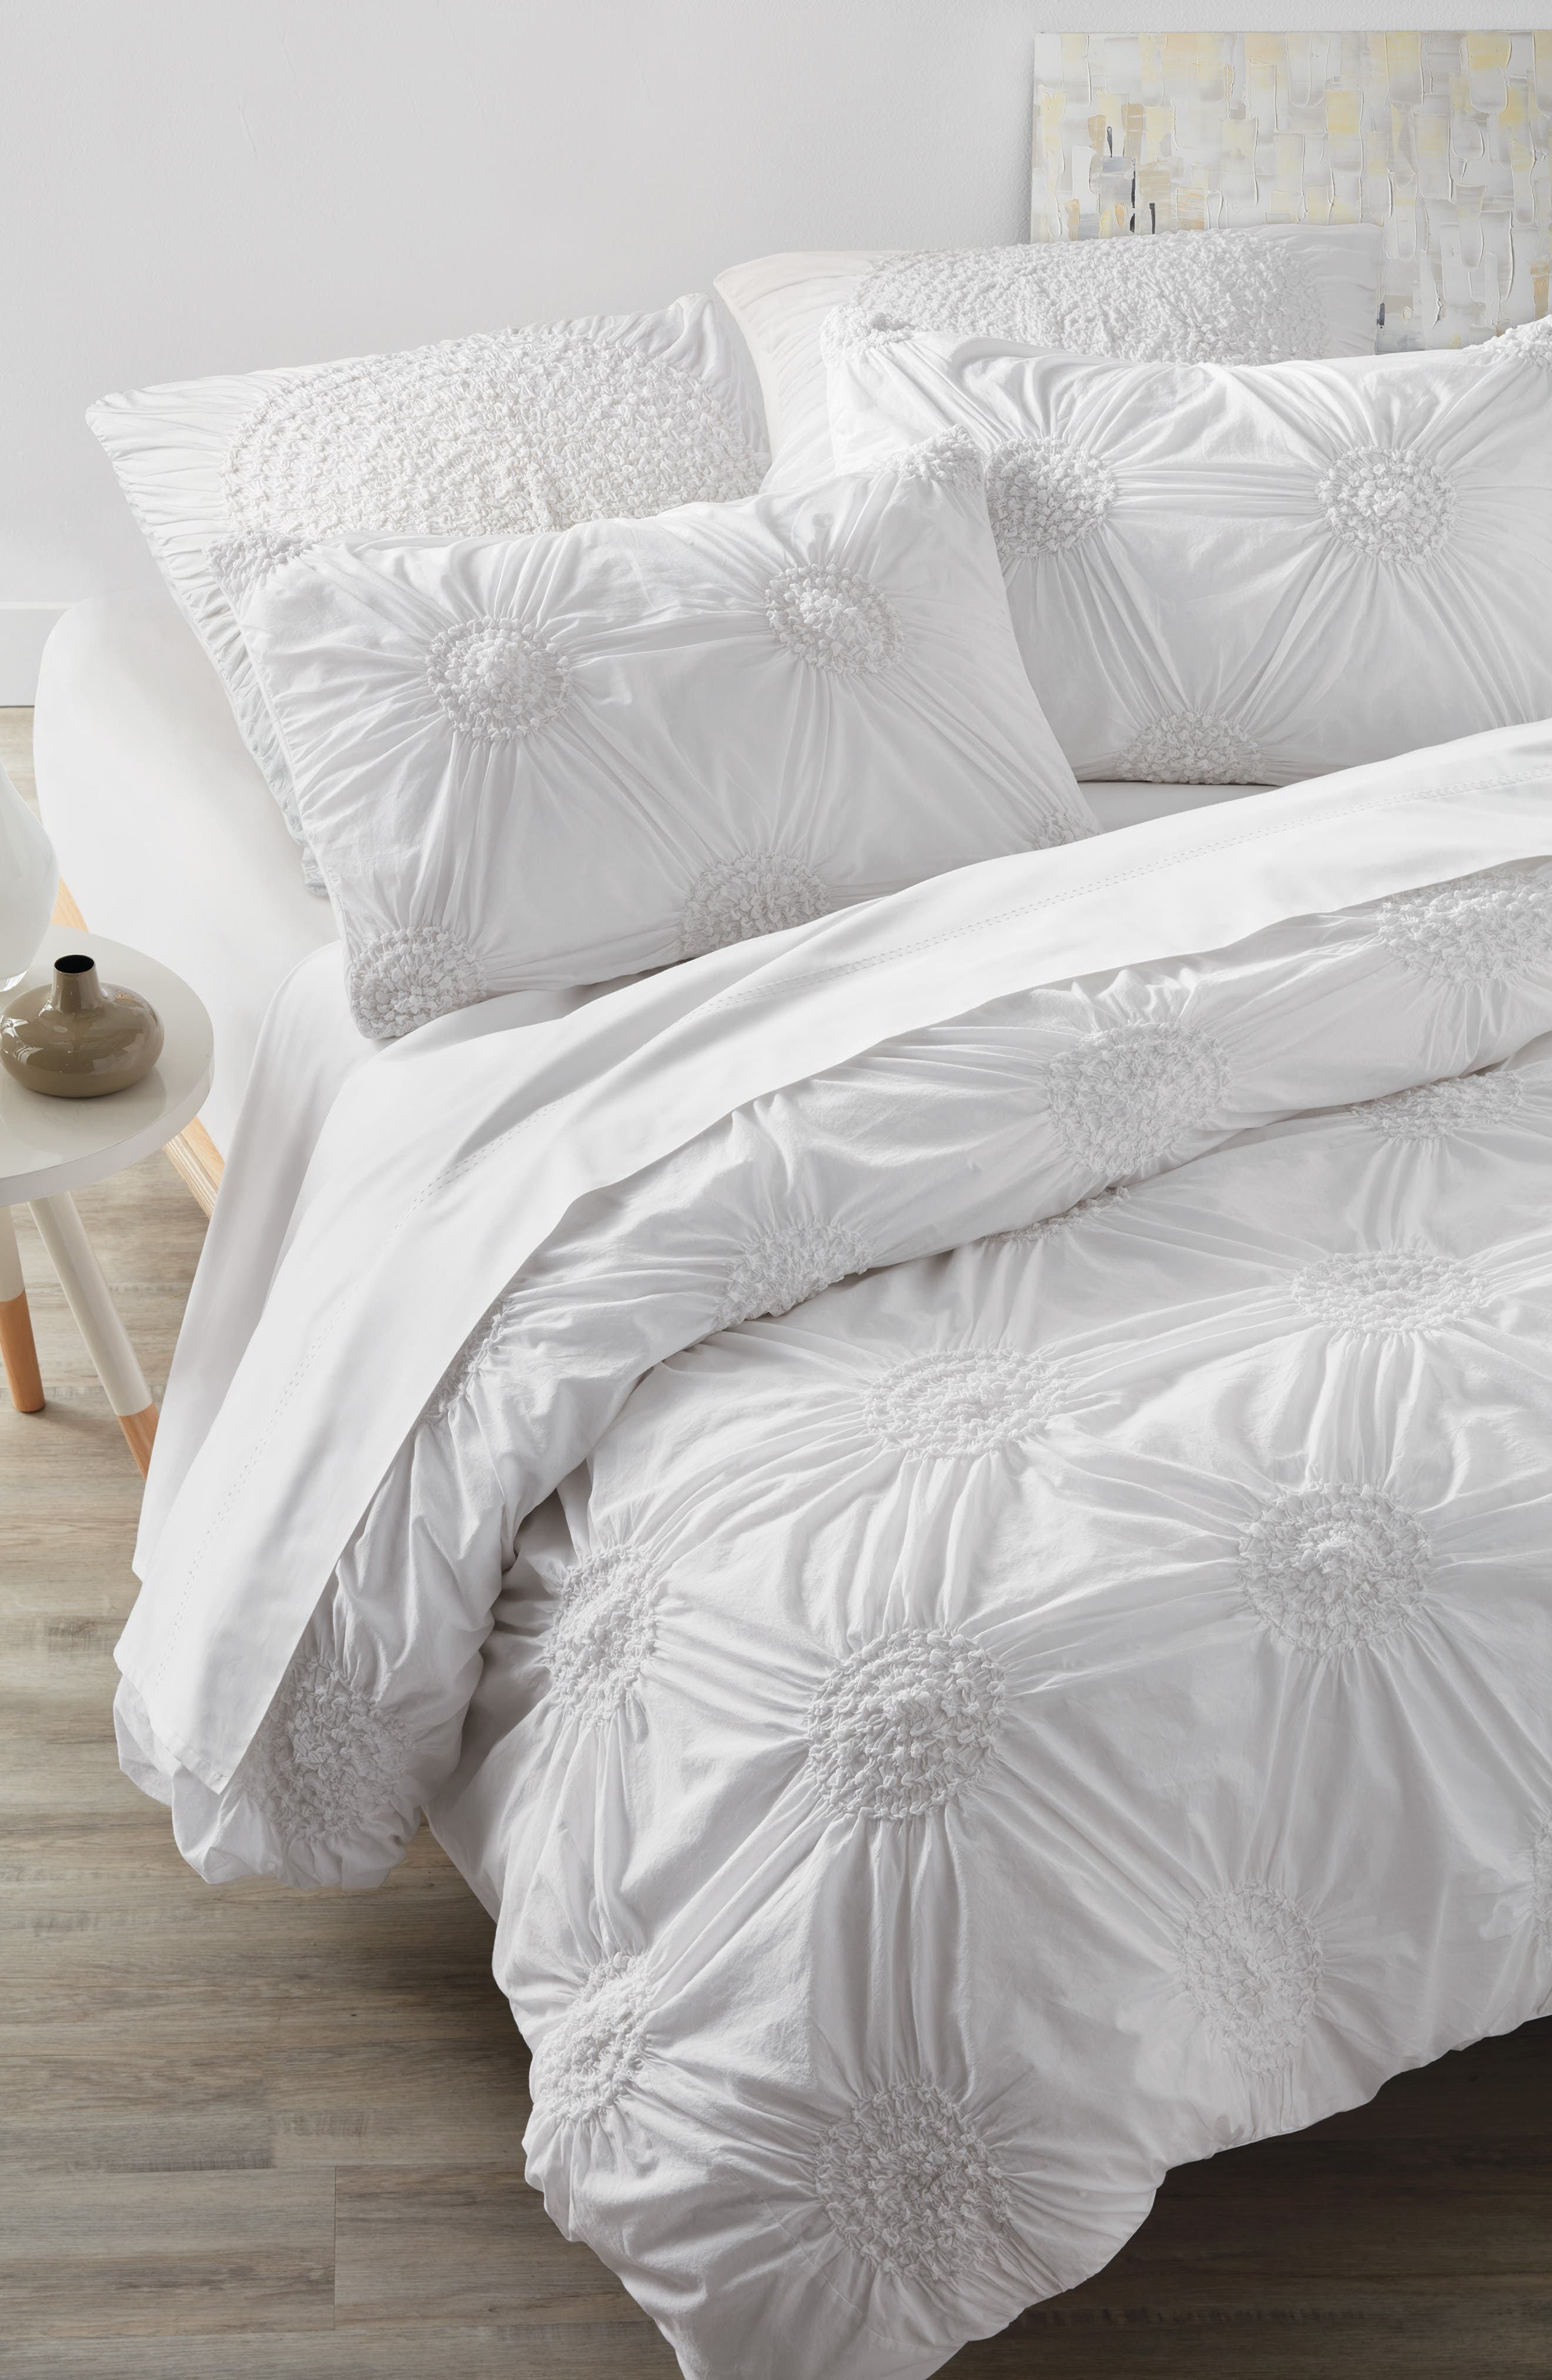 'Chloe' Duvet Cover,                         Main,                         color, White